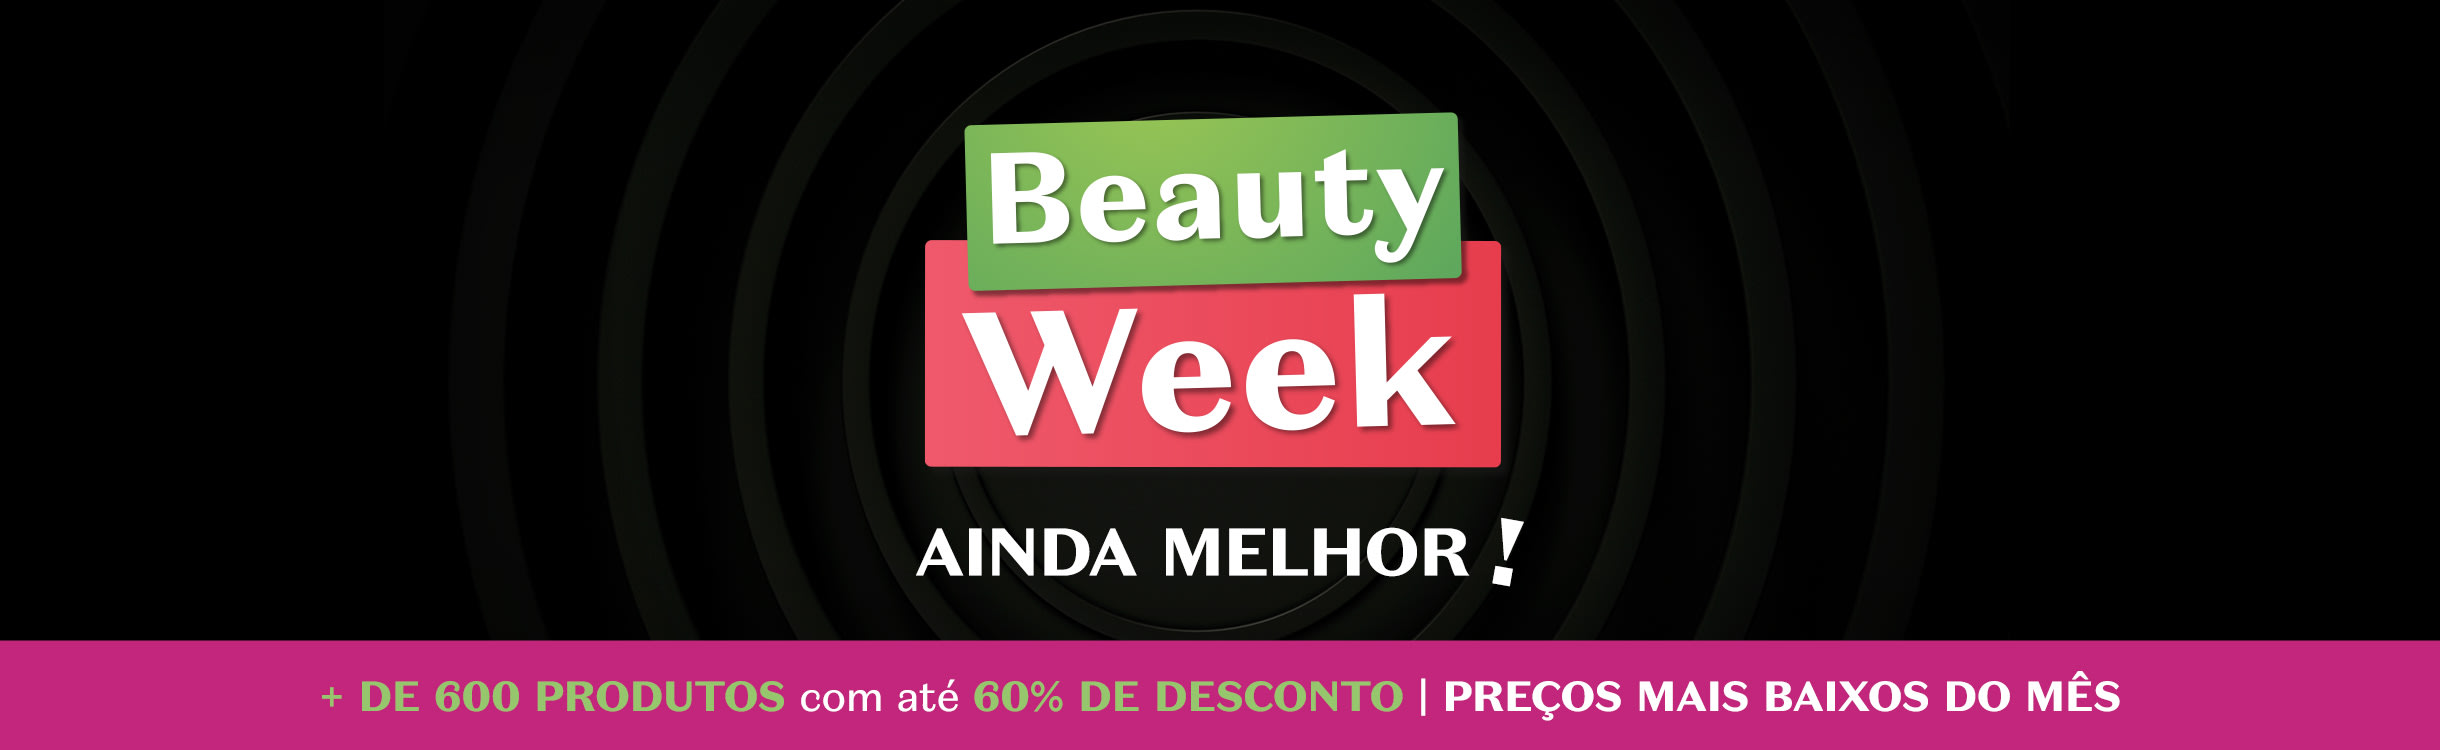 Beauty Week - Descontos de 30%